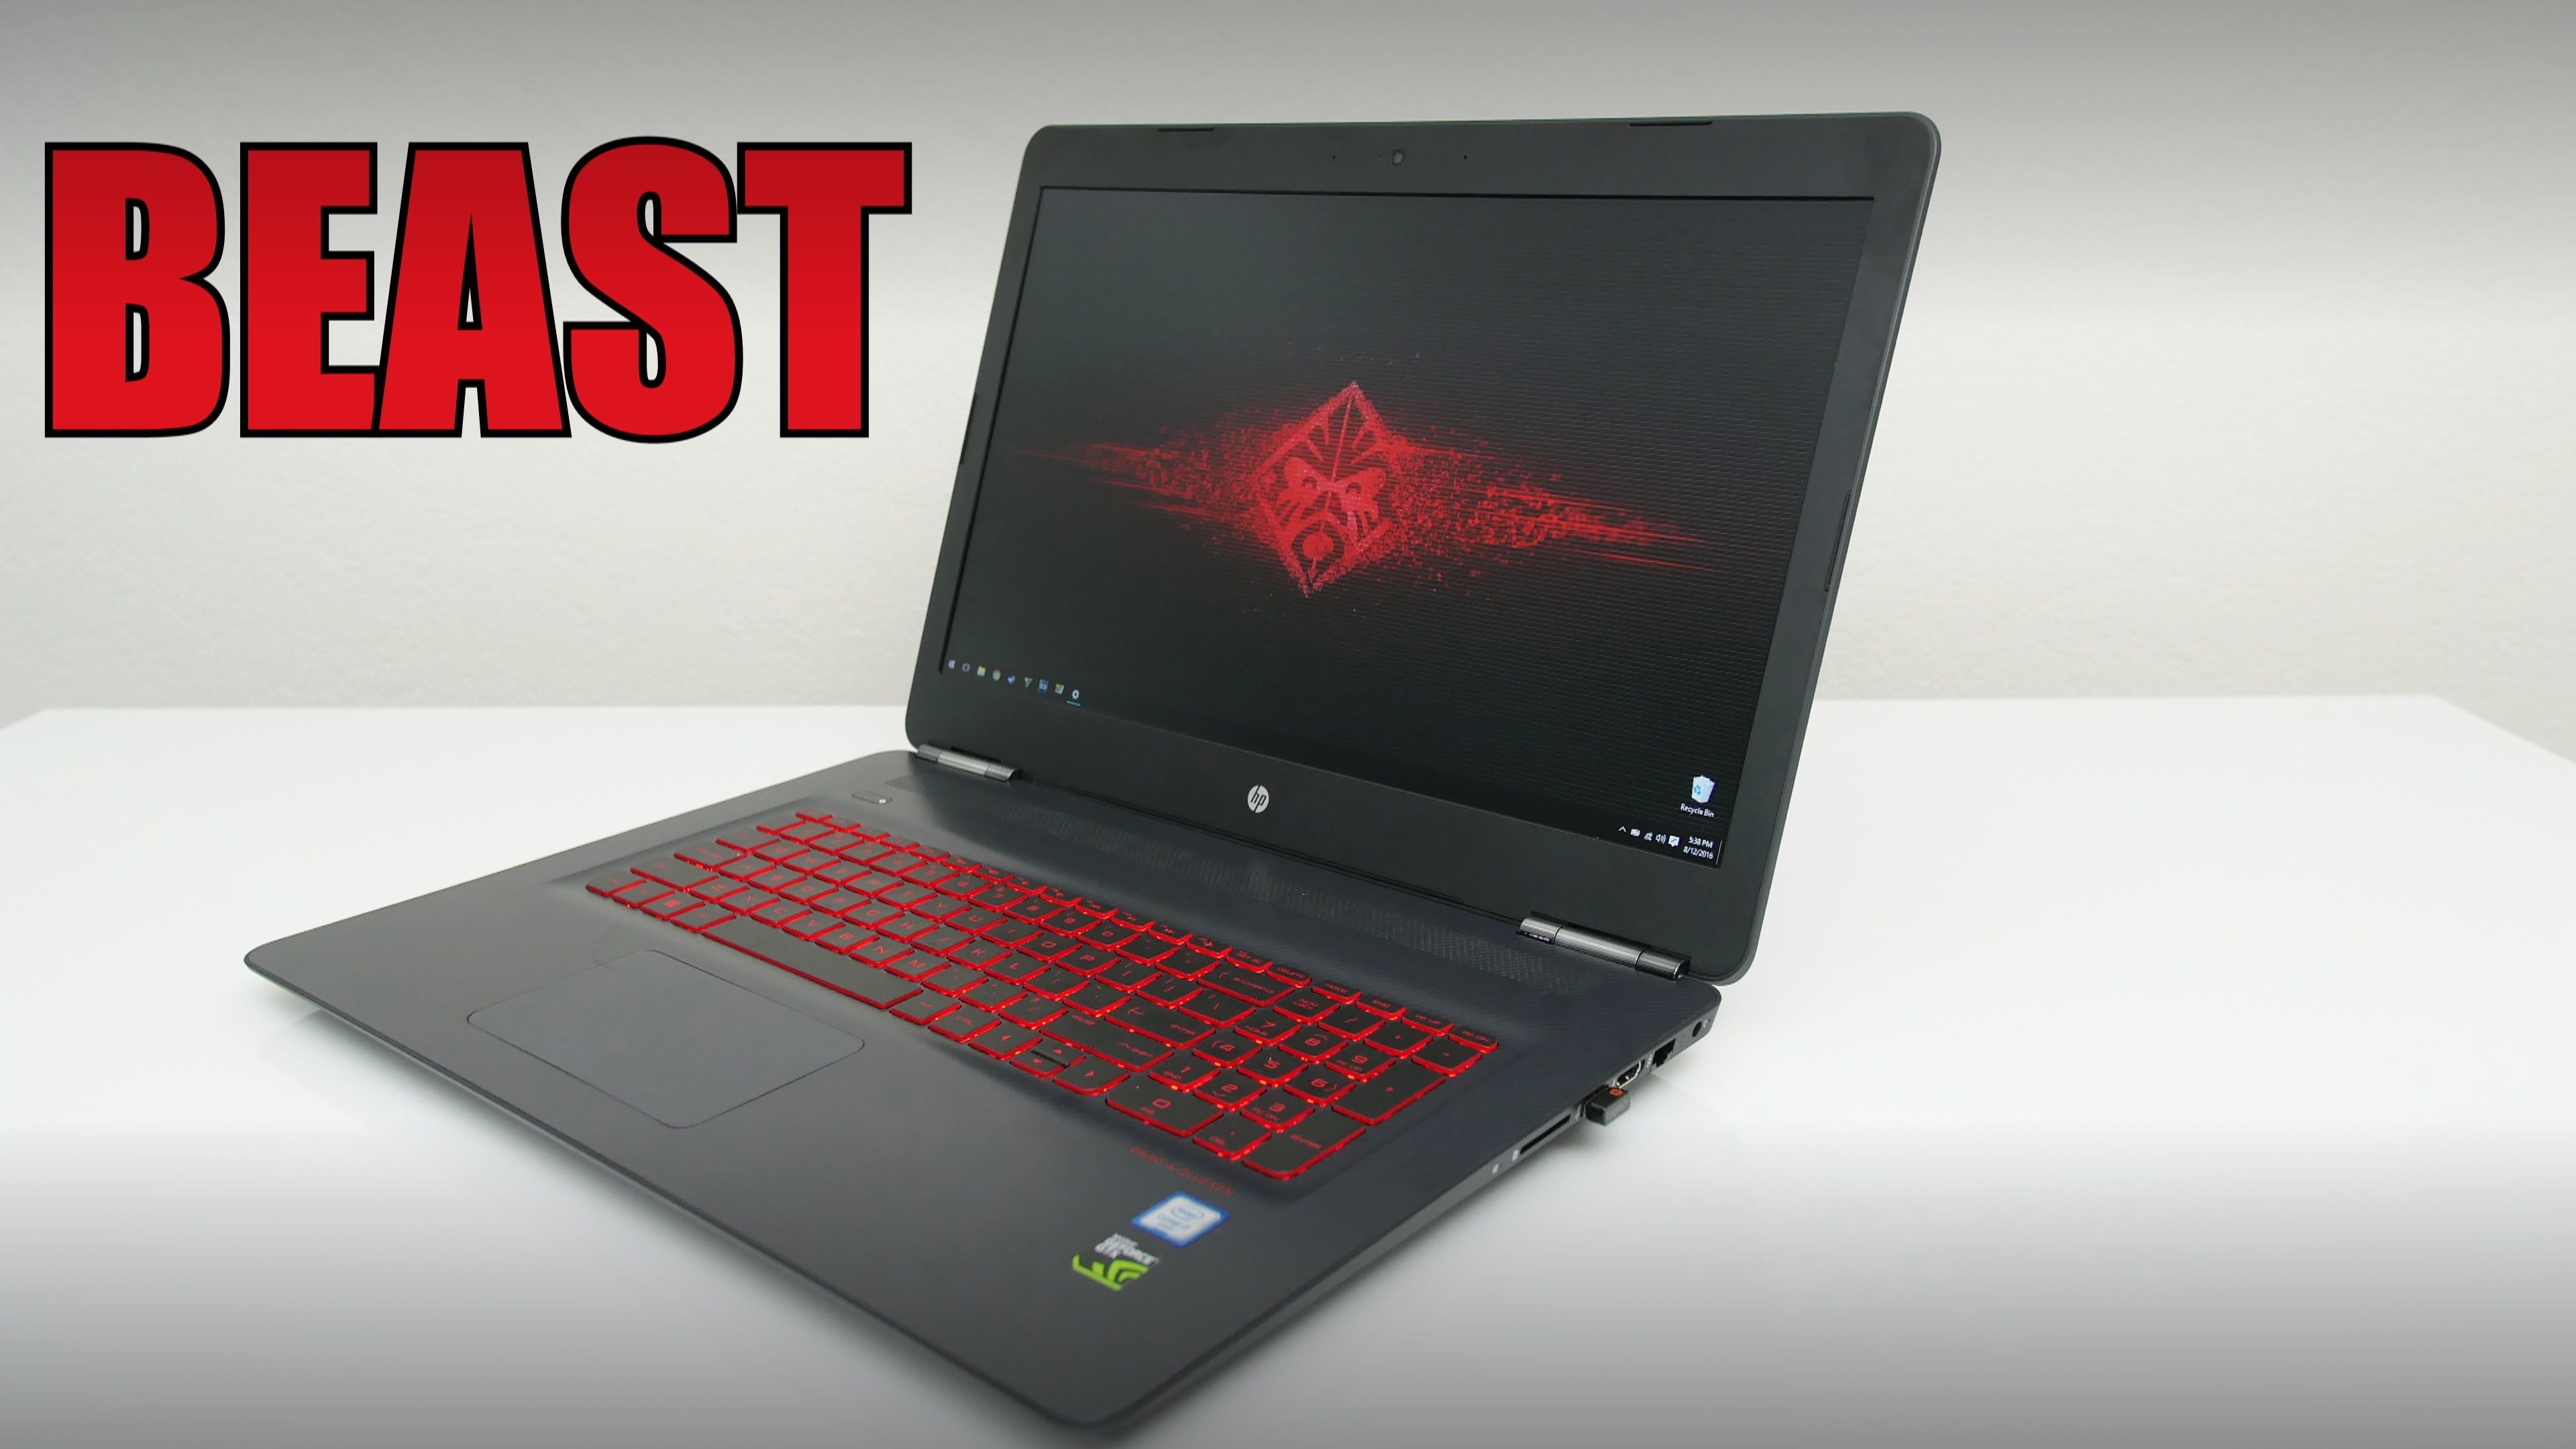 Cool OMEN by HP - Most Powerful and Affordable Gaming Laptop Check more at https://ggmobiletech.com/gaming-laptop/omen-by-hp-most-powerful-and-affordable-gaming-laptop/